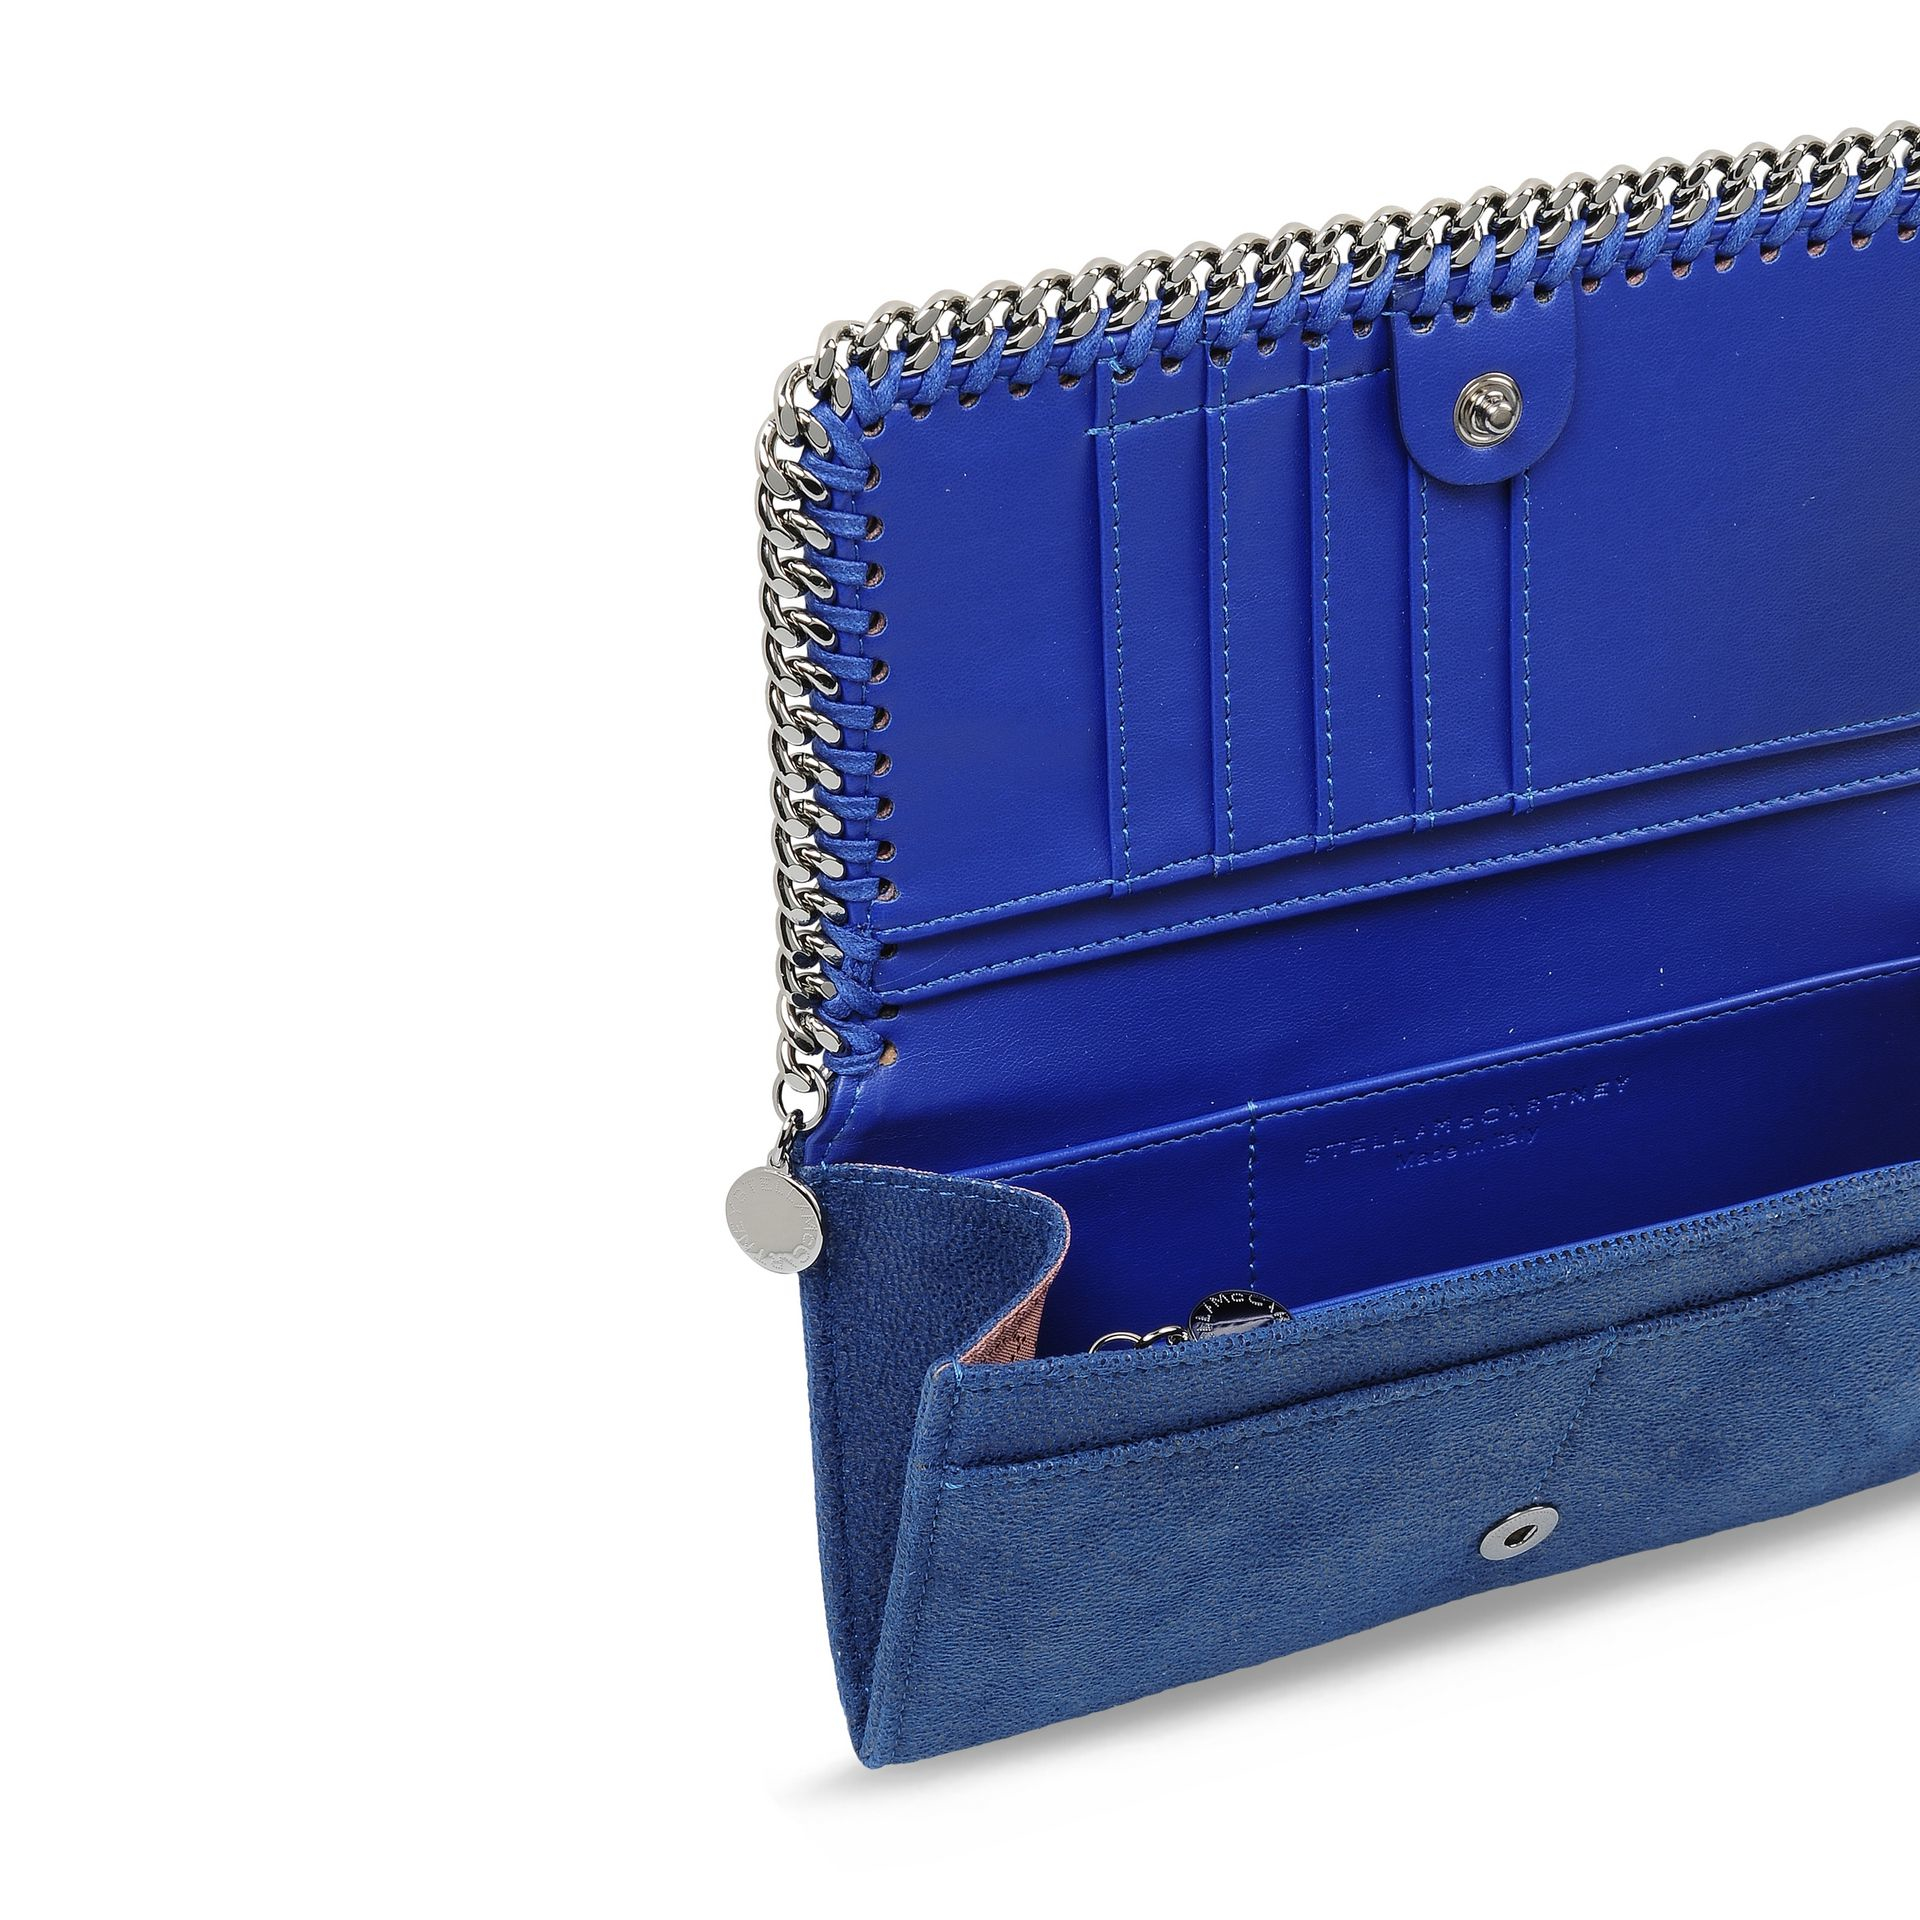 Cheap Pick A Best Falabella zip wallet - Blue Stella McCartney Store For Sale With Paypal Cheap Price Visa Payment Cheap Price Sunshine AC3S0cjC